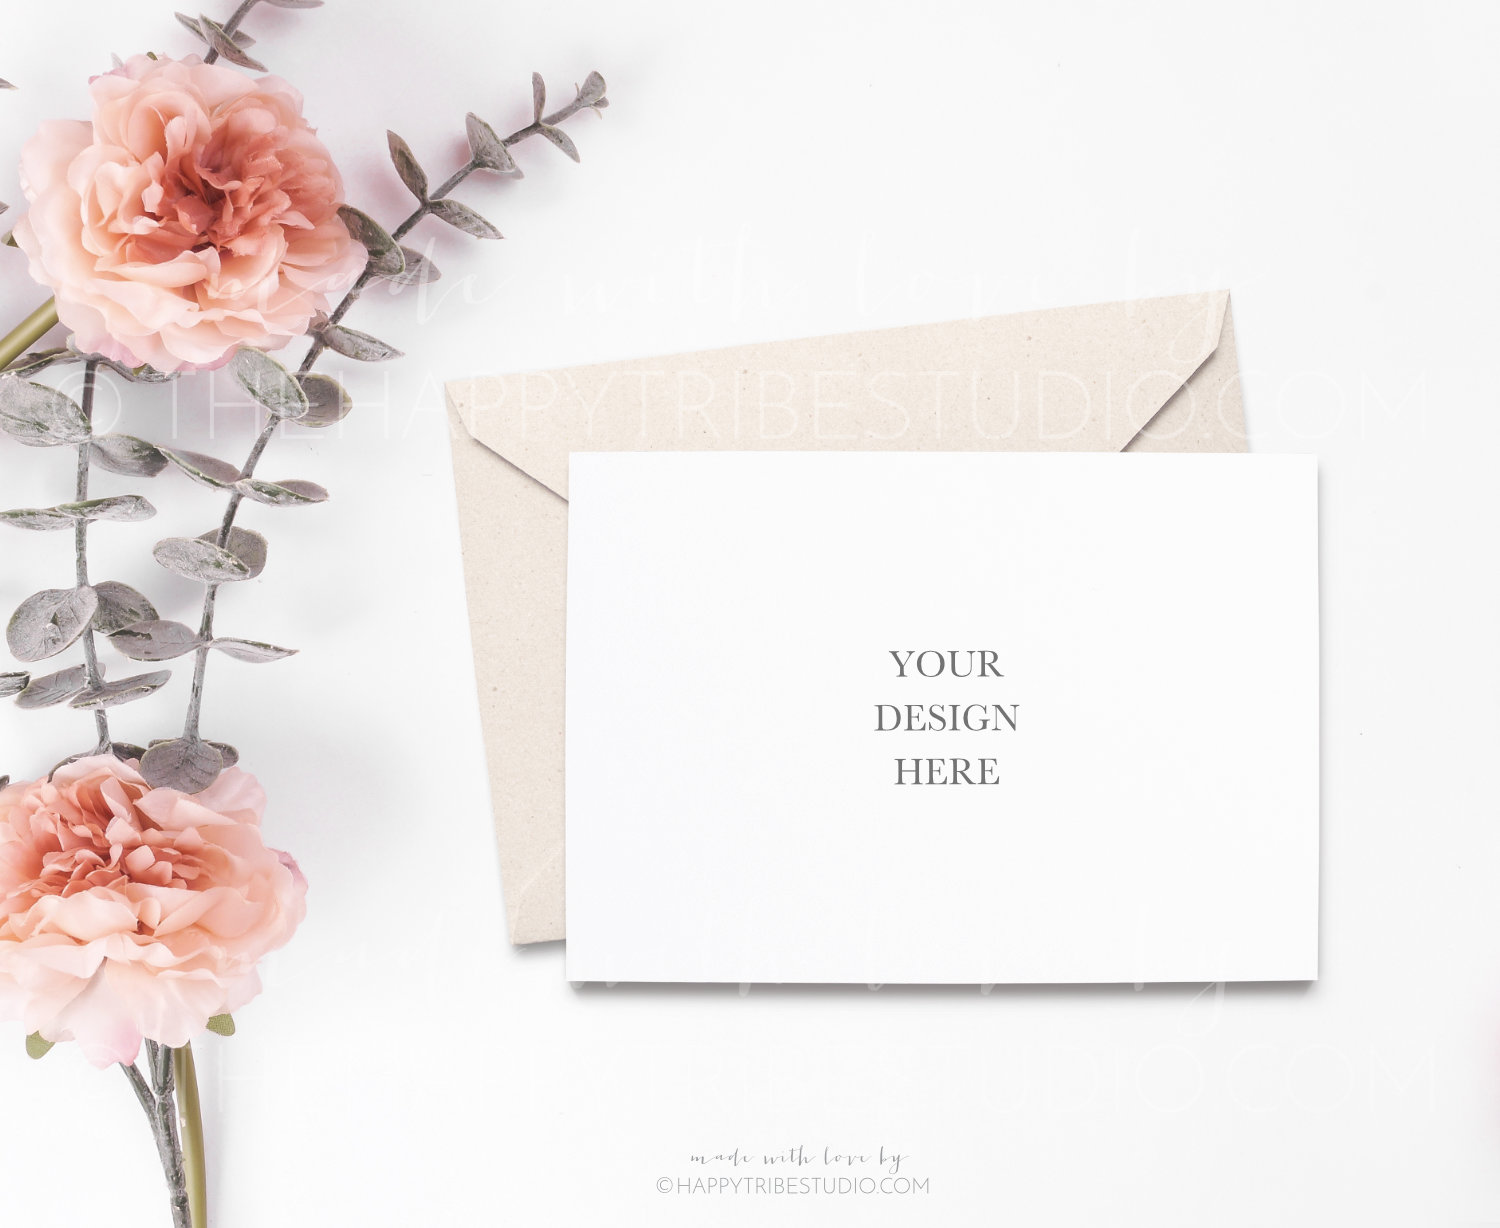 Stationery Mockup Bundle example image 2